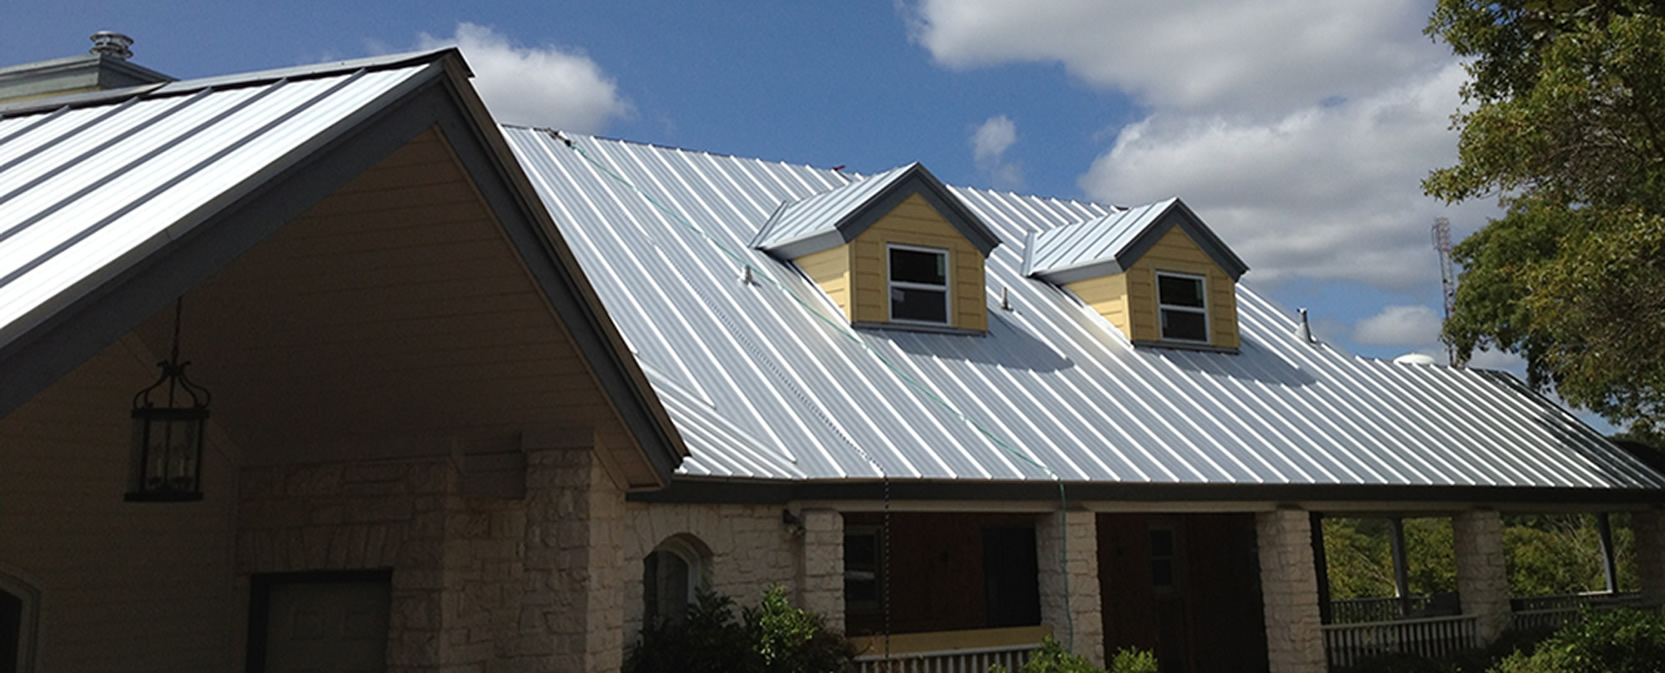 platinum roofing texas residential metal roofing